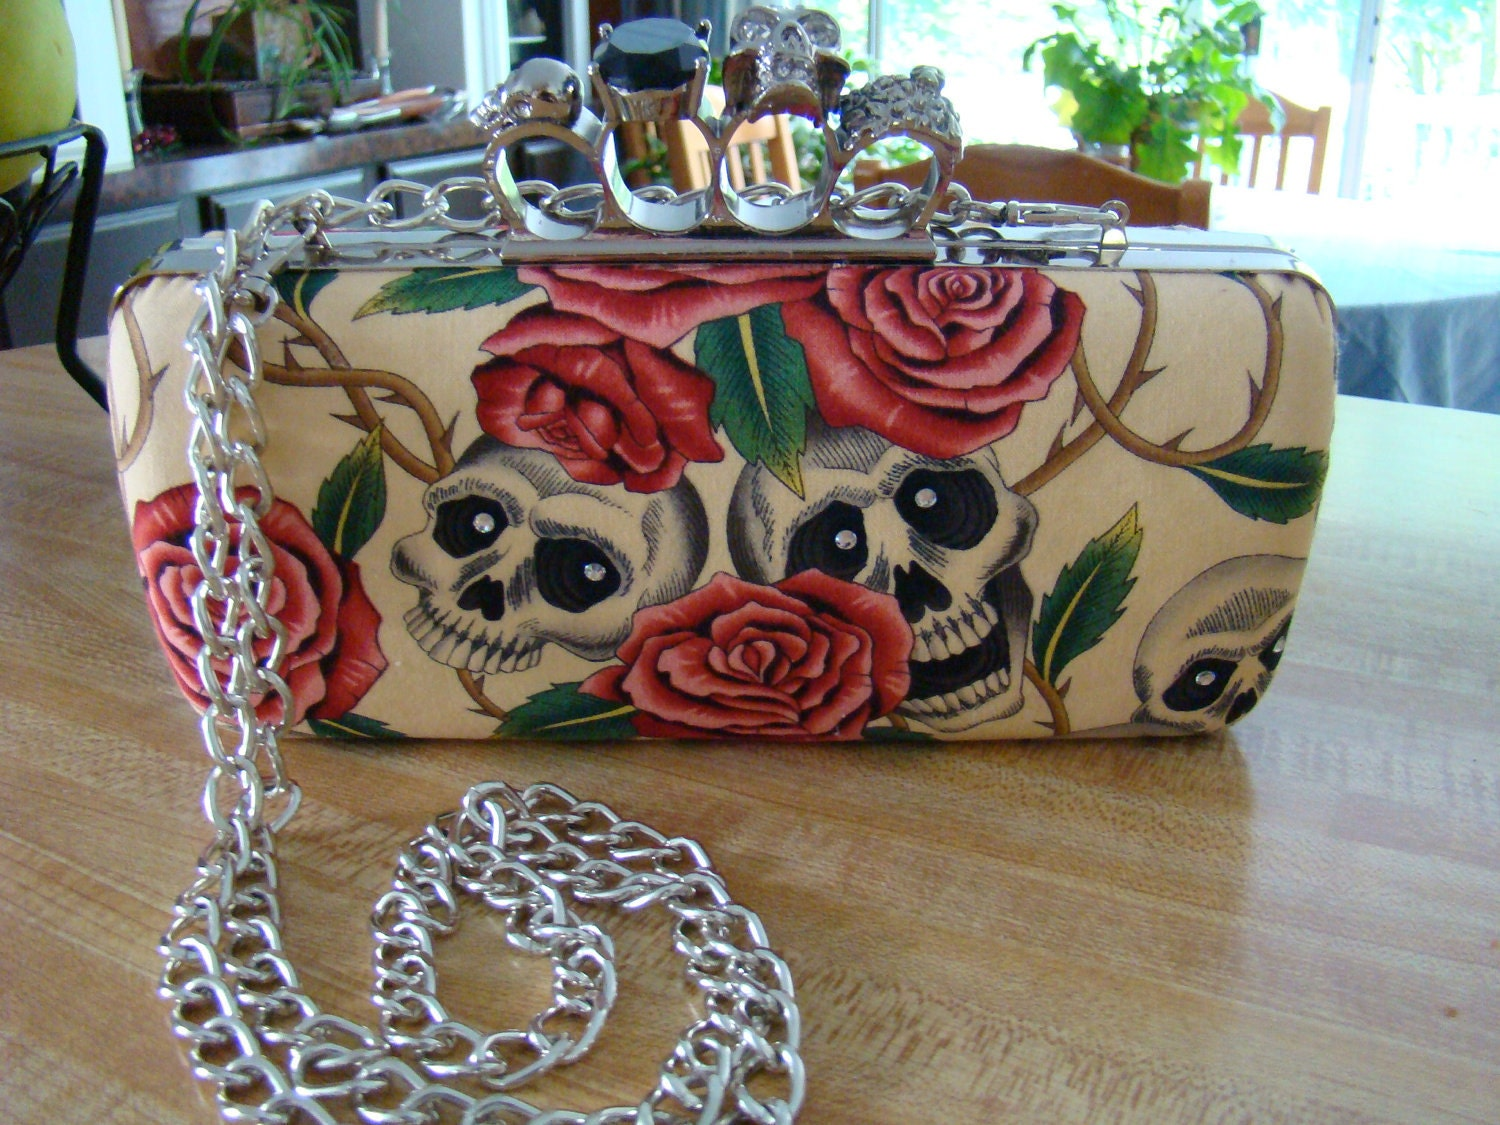 Skull Knuckle Clutch Purse - Tea stained with pink roses and grey skulls